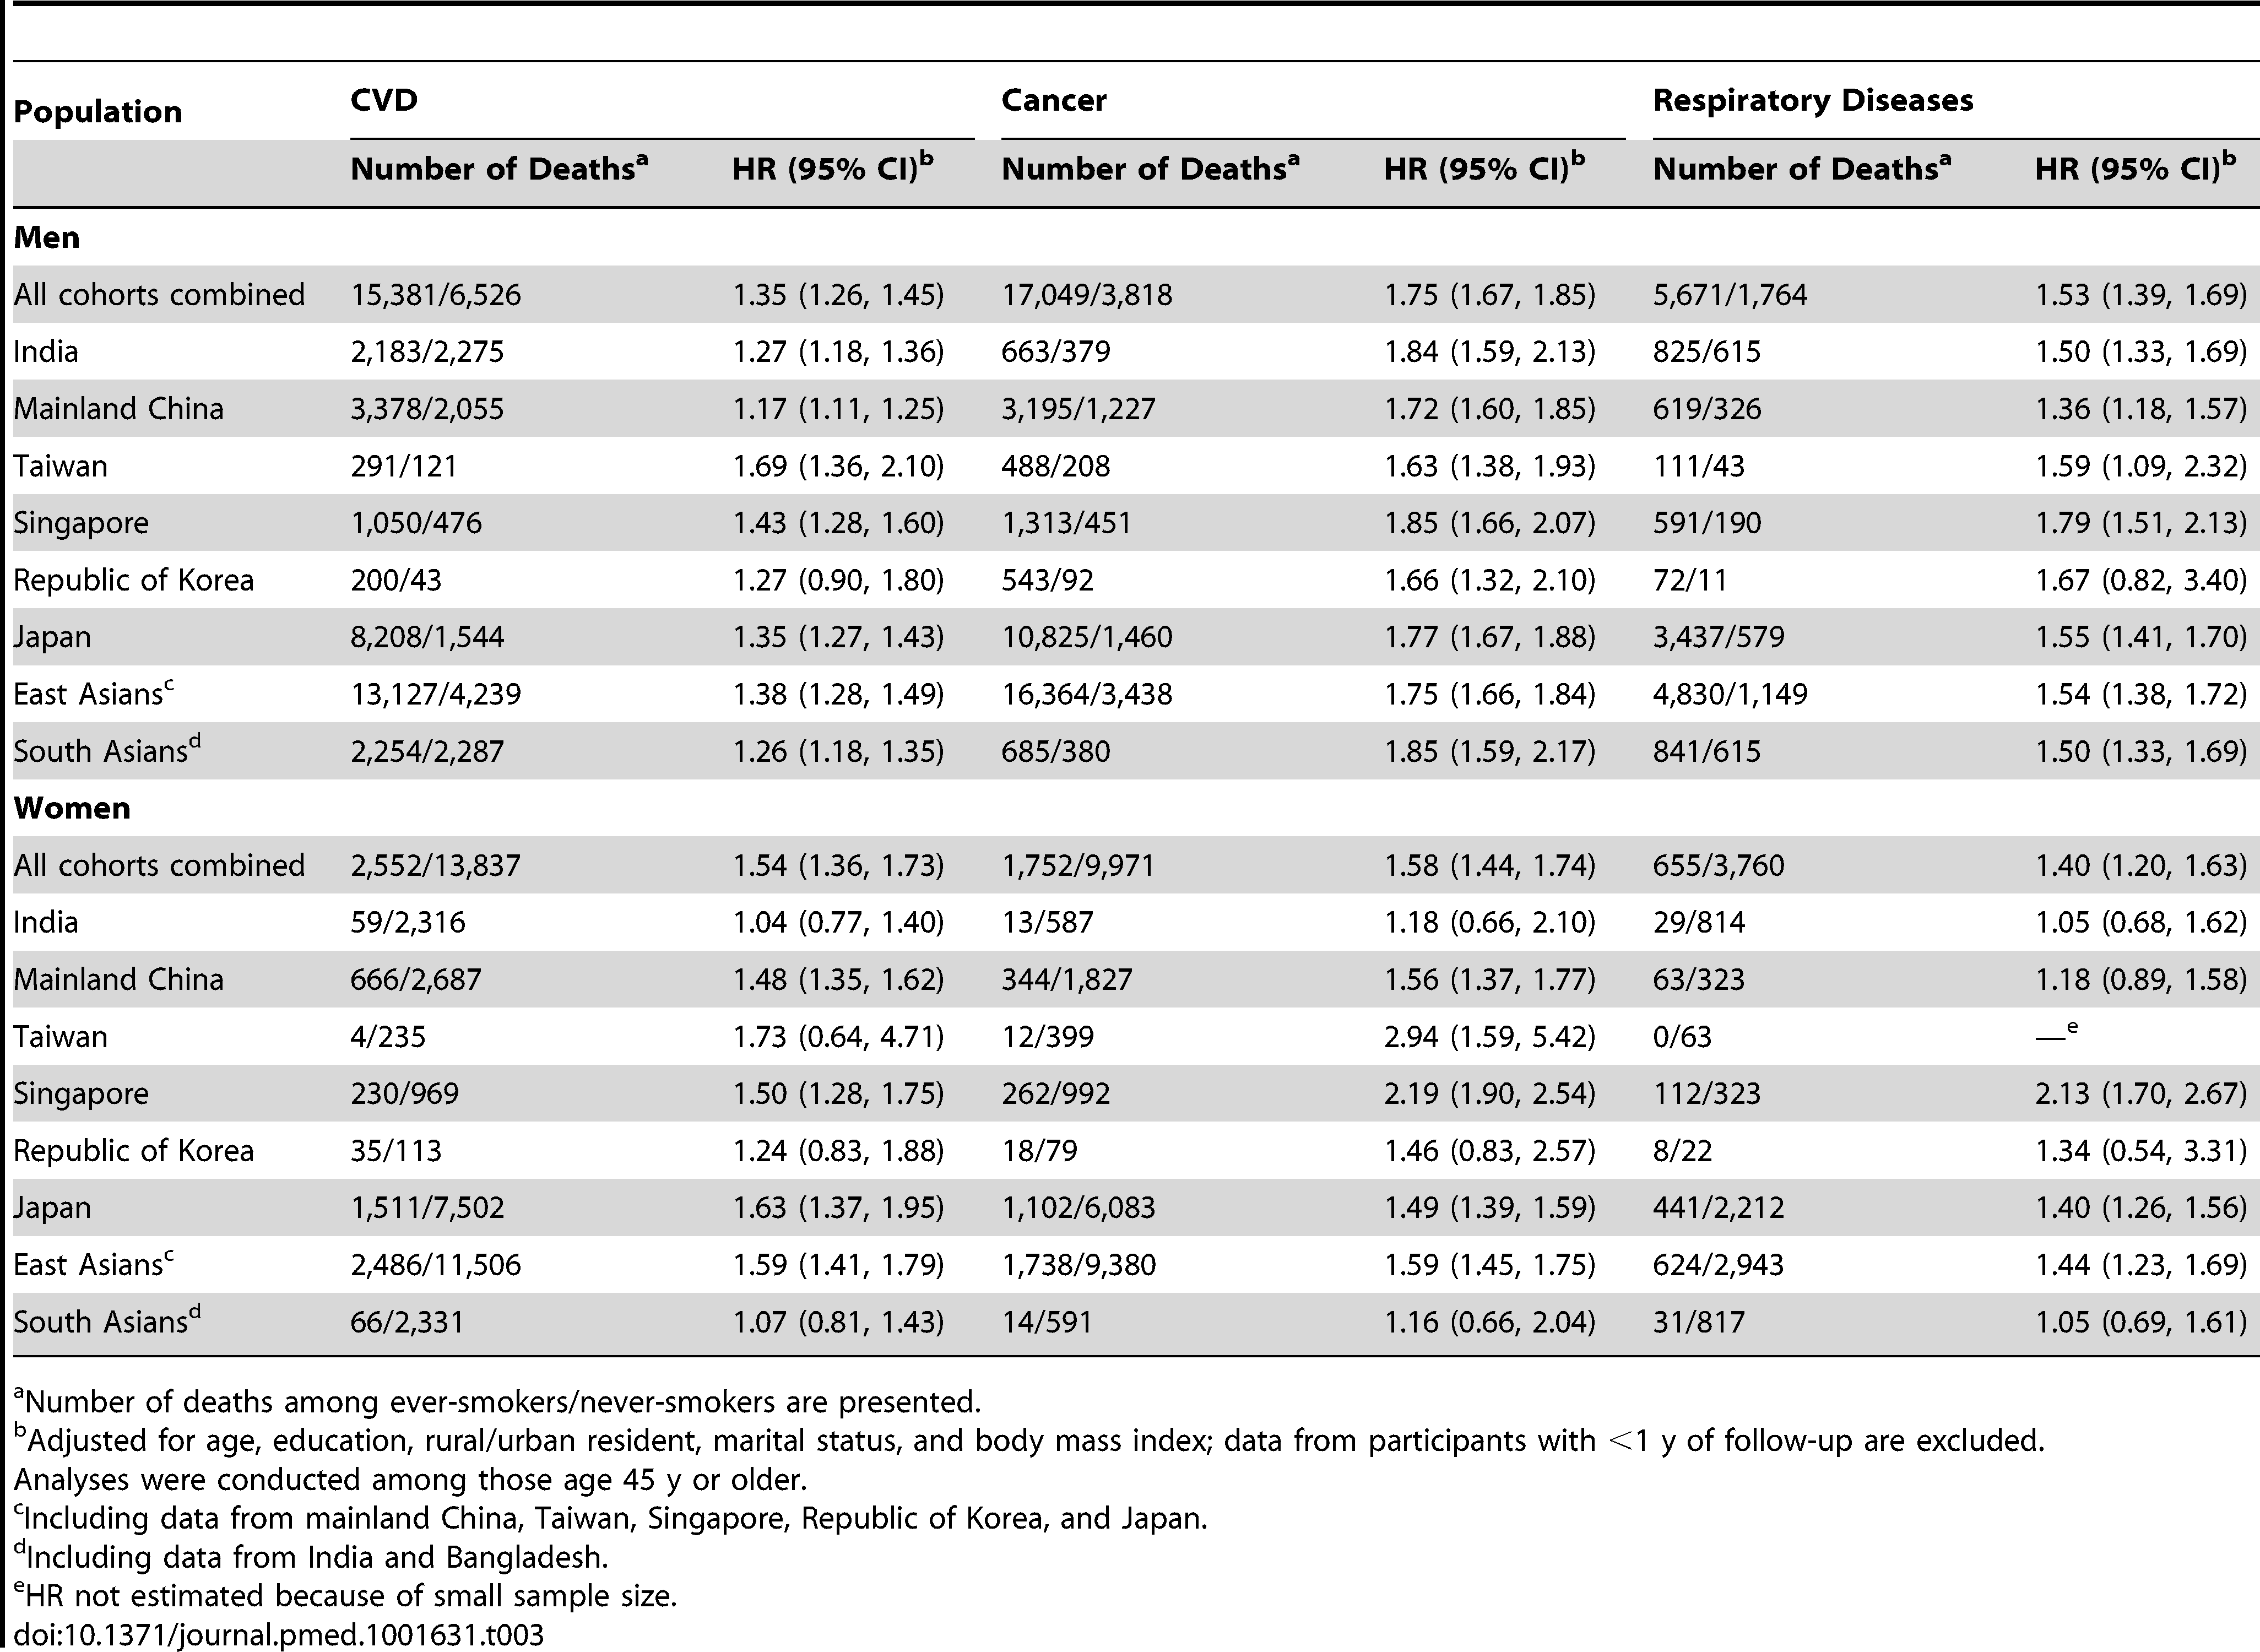 Association of tobacco smoking with risk of death from cardiovascular diseases, cancer, or respiratory diseases in selected study populations in Asia.